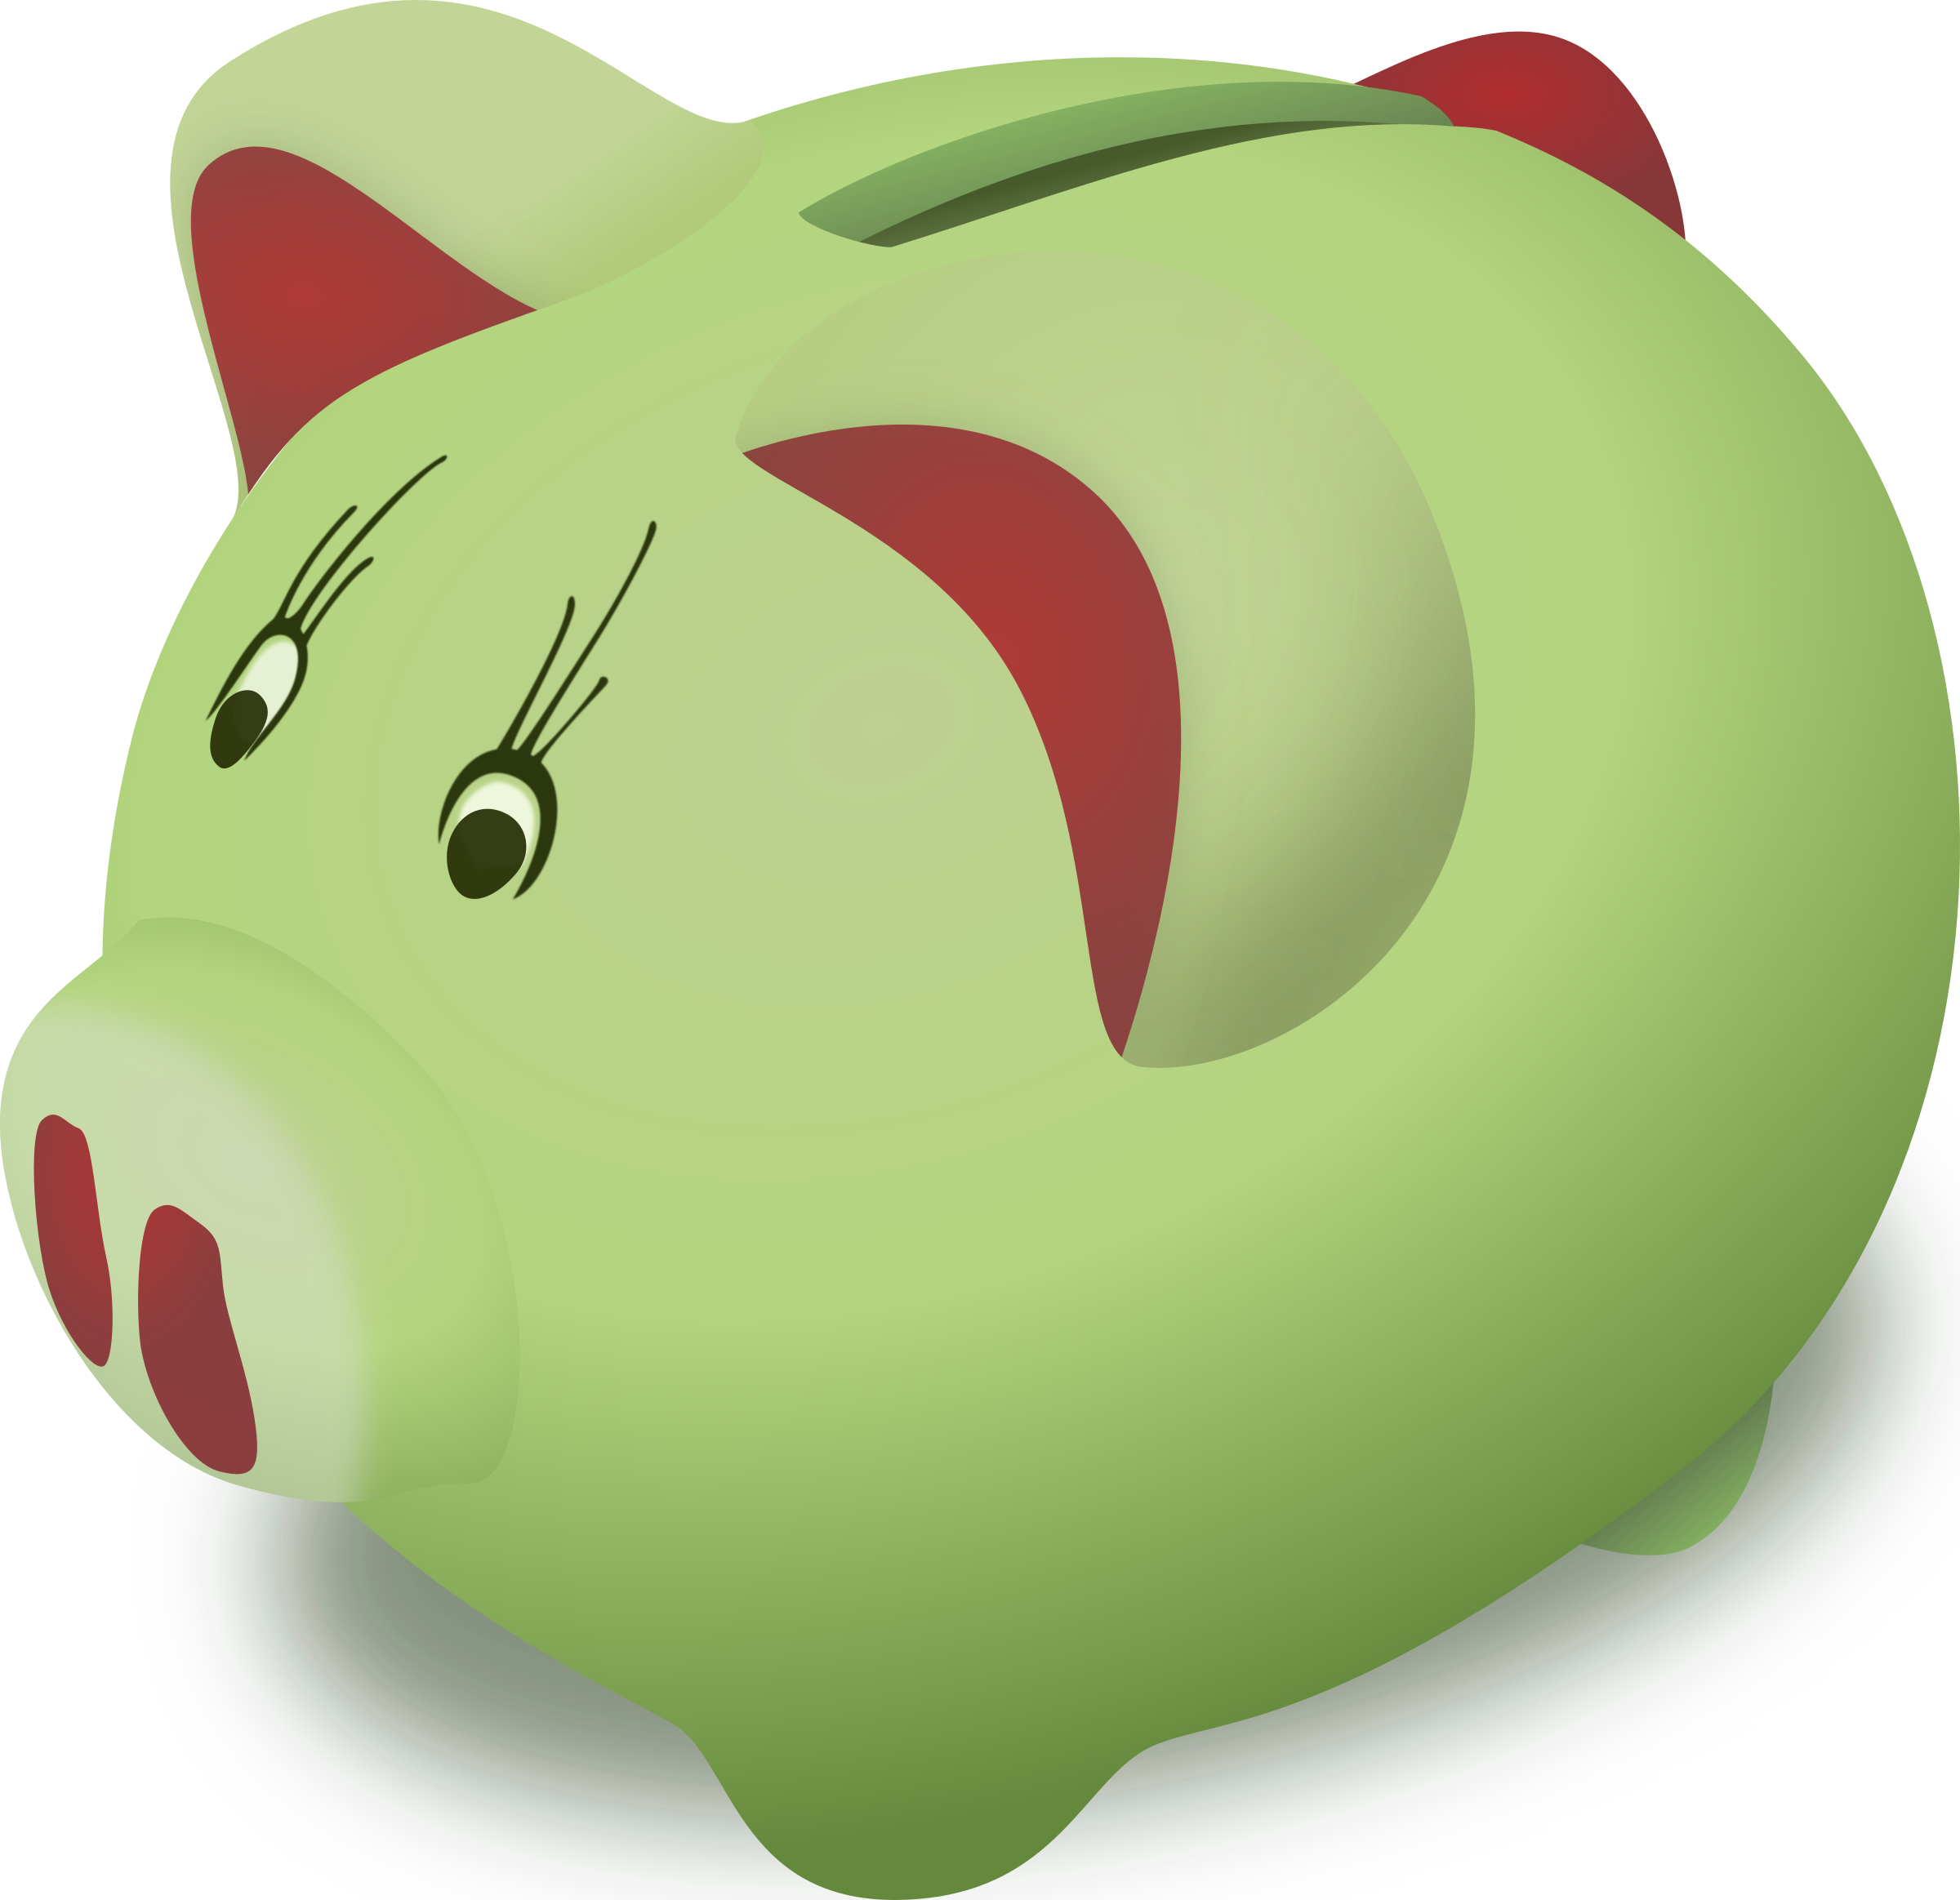 Green piggy bank clipart graphic freeuse library Clipart - Piggybank graphic freeuse library